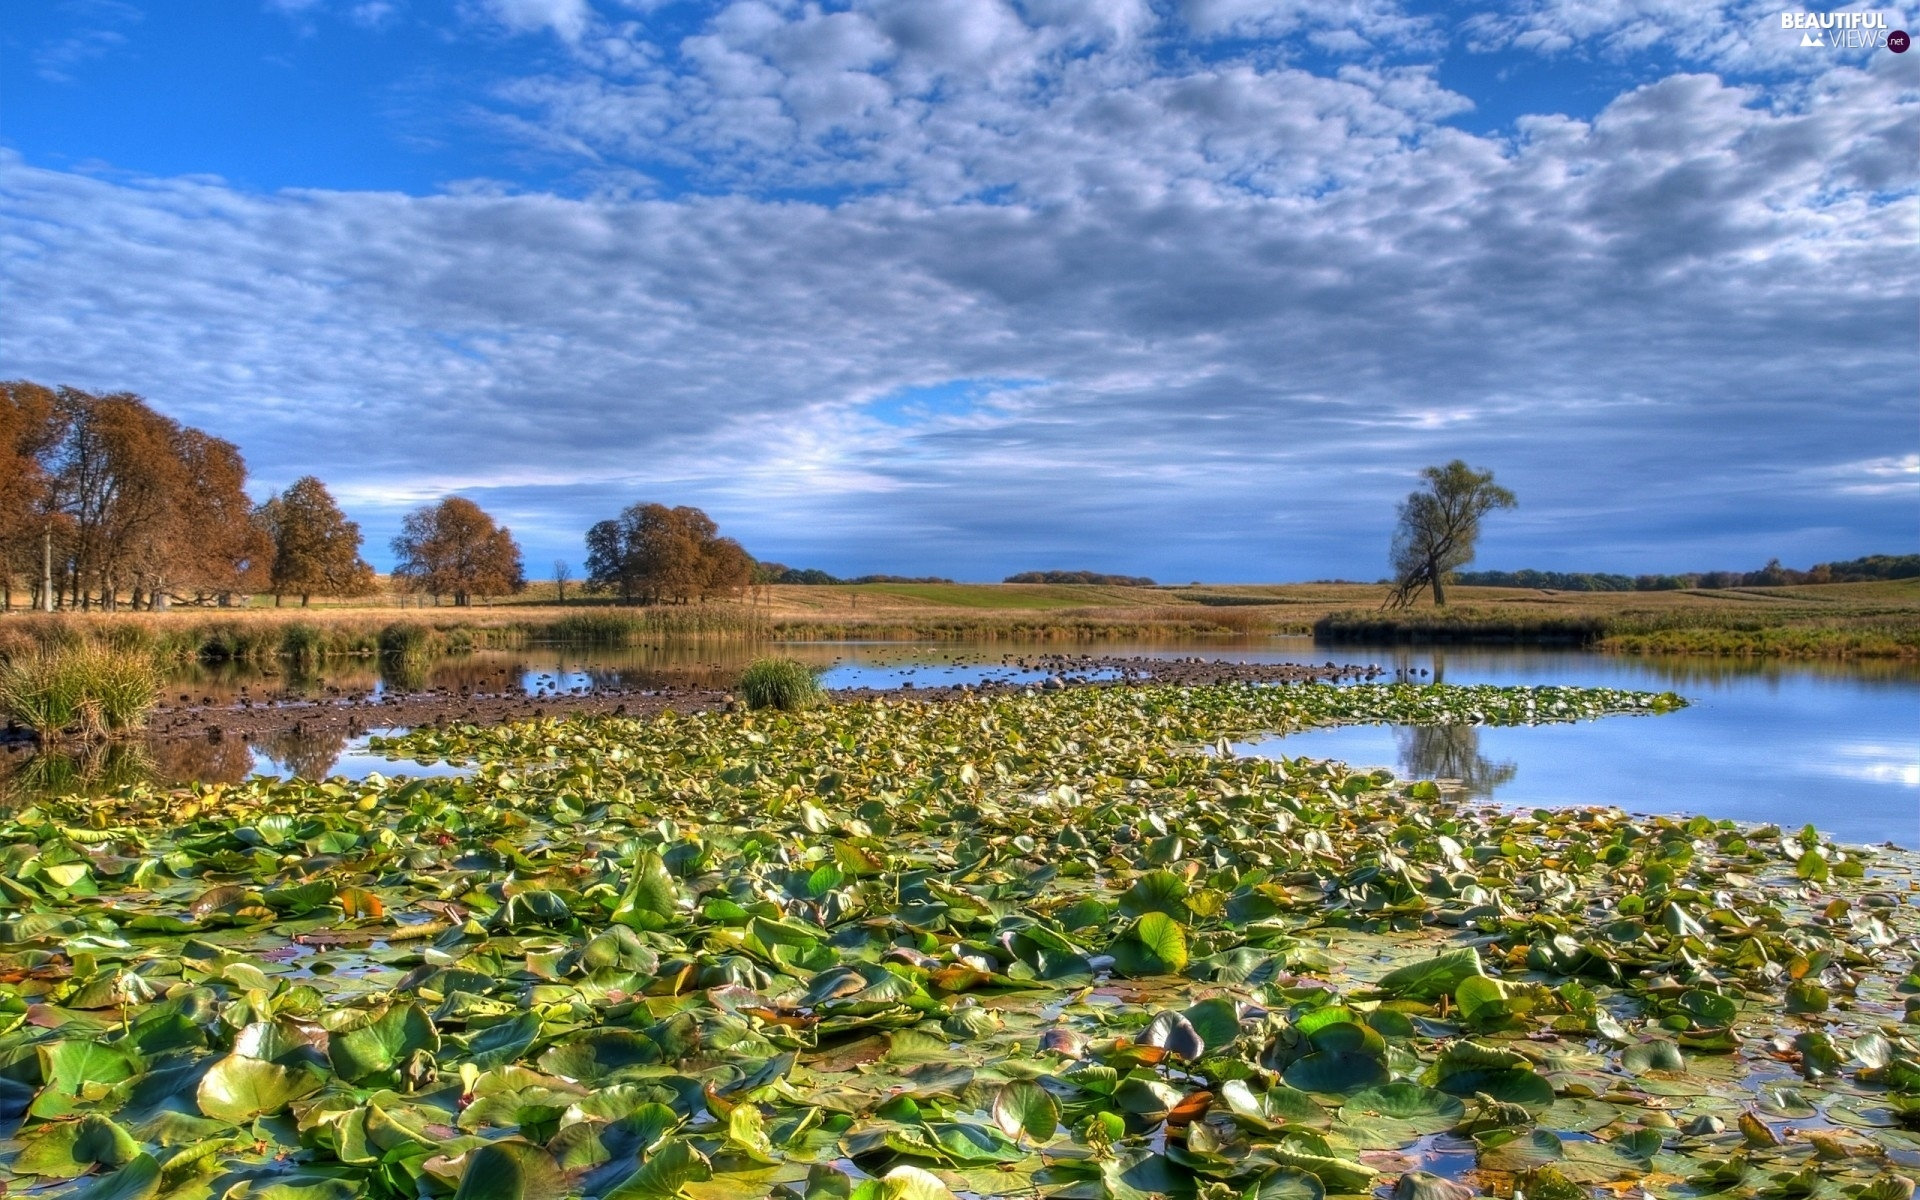 trees, lilies, Meadow, water, lake, viewes, clouds